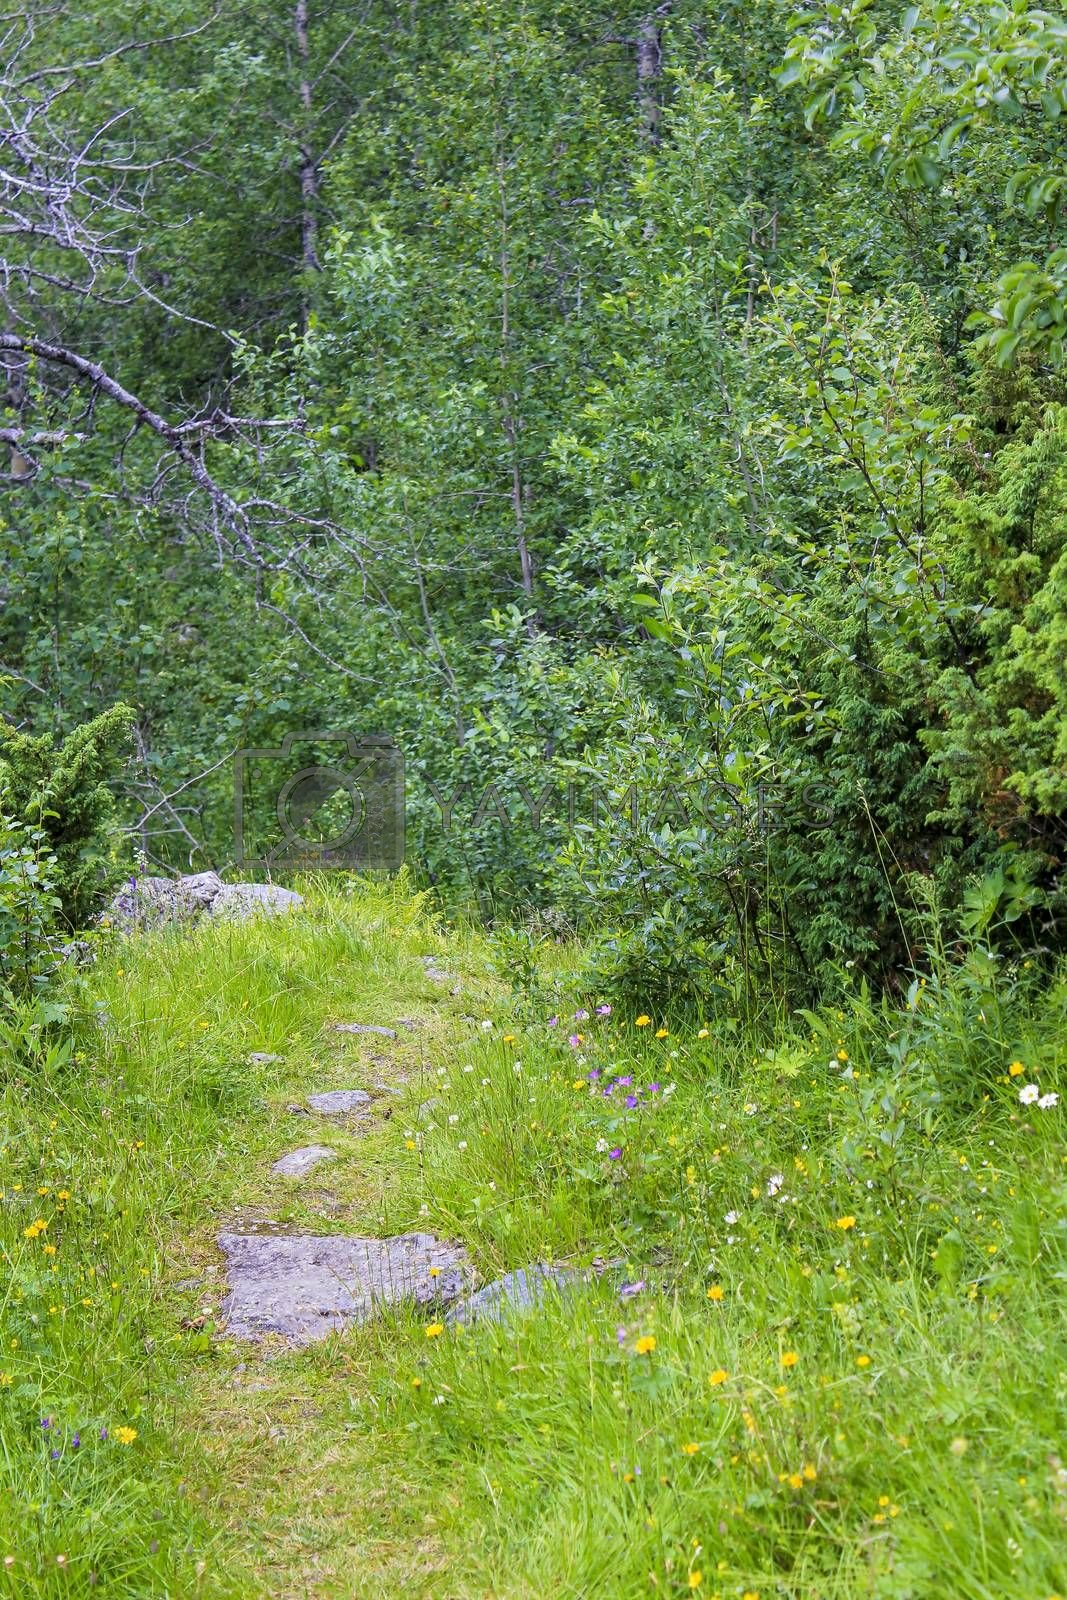 Hiking trail in the forest in the mountains of Hemsedal, Viken, Norway.